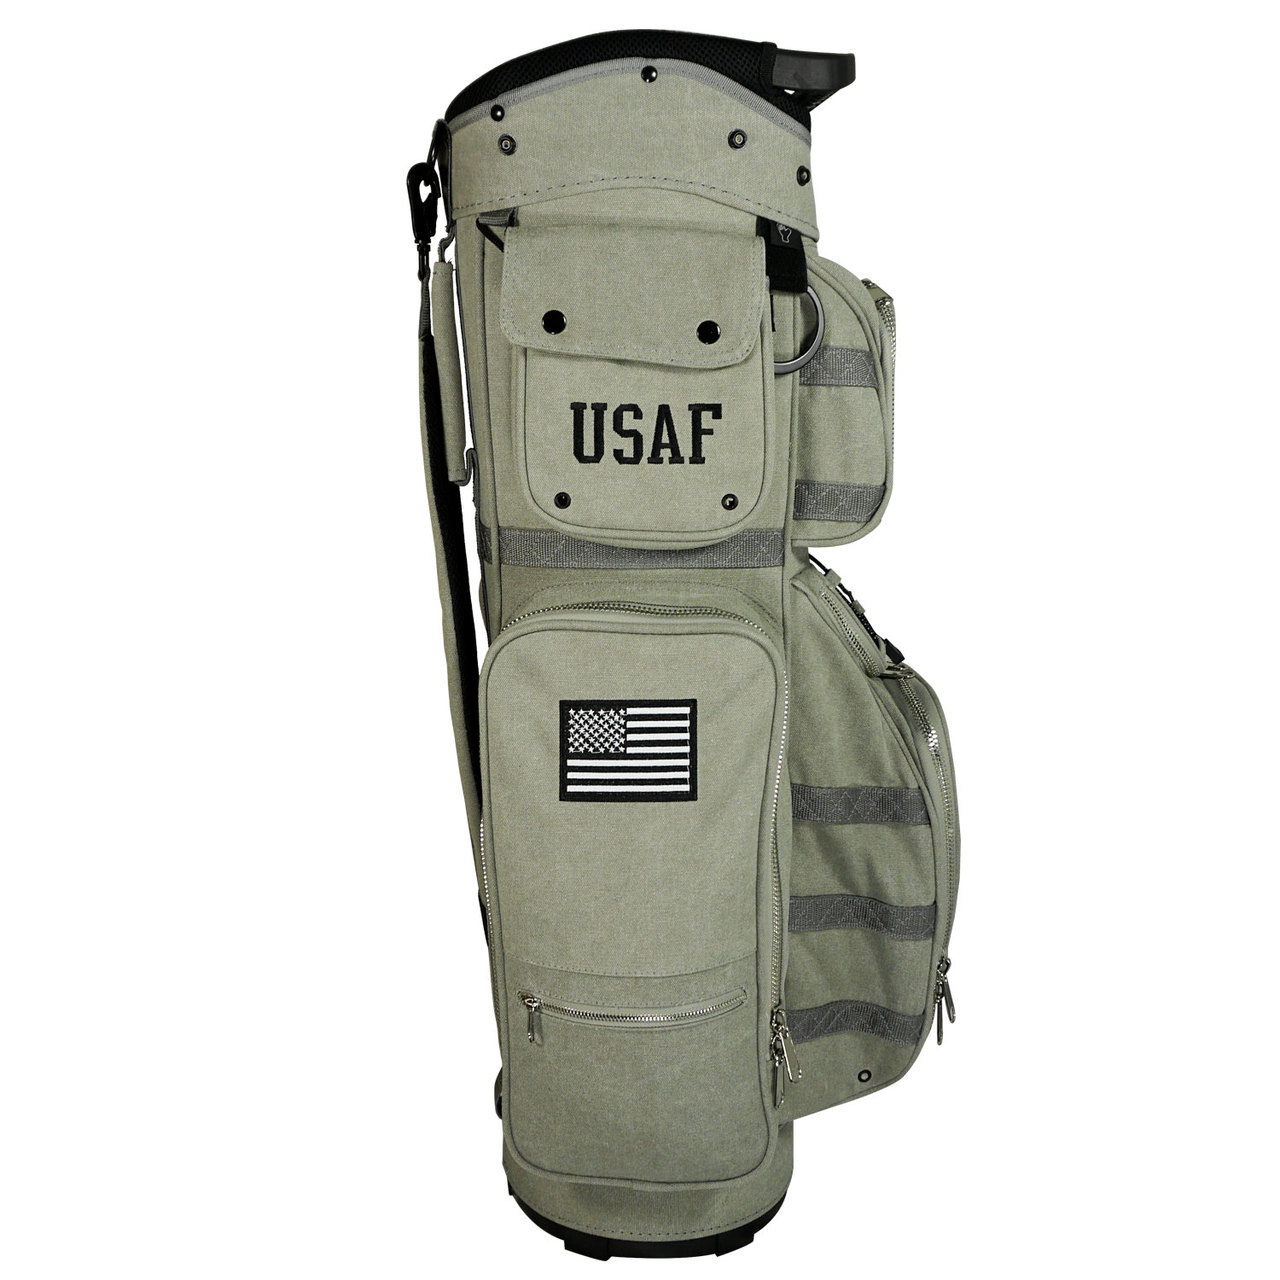 Air Force - Active Duty Cart Bag - Hot-Z Military Golf Bags